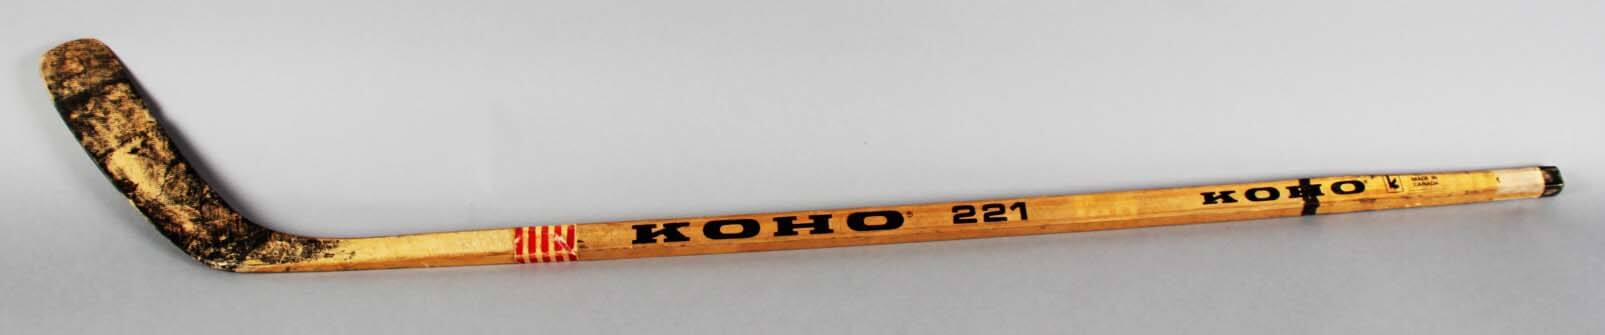 1985 Lee Fogolin Game-Used Stanley Cup Finals Hockey Stick Signed by Wayne Gretzky, Mark Messier etc. - PSA/DNA Full LOA